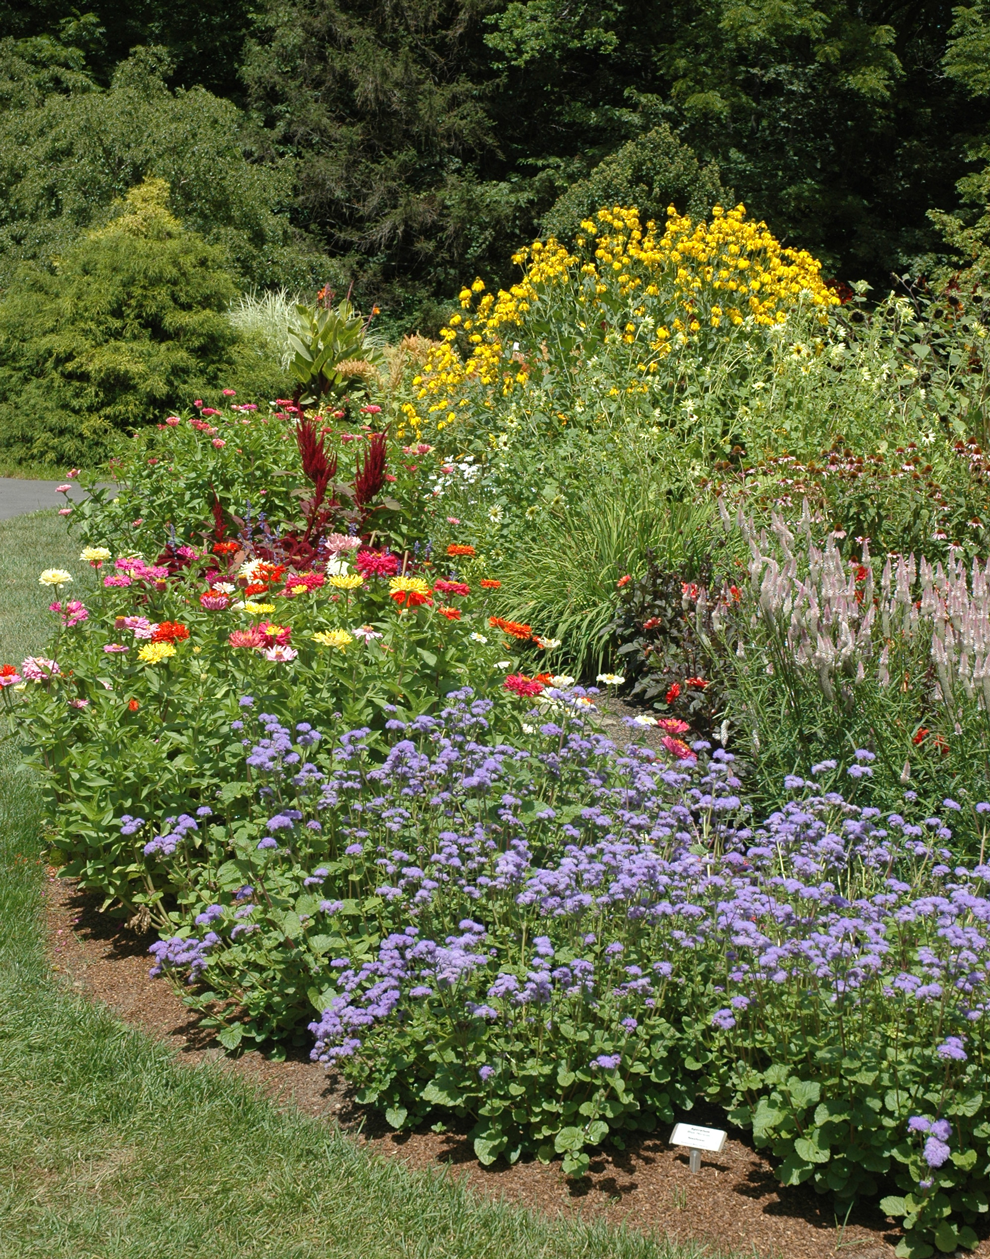 The cutting garden with blooms at Inniswood Metro Gardens